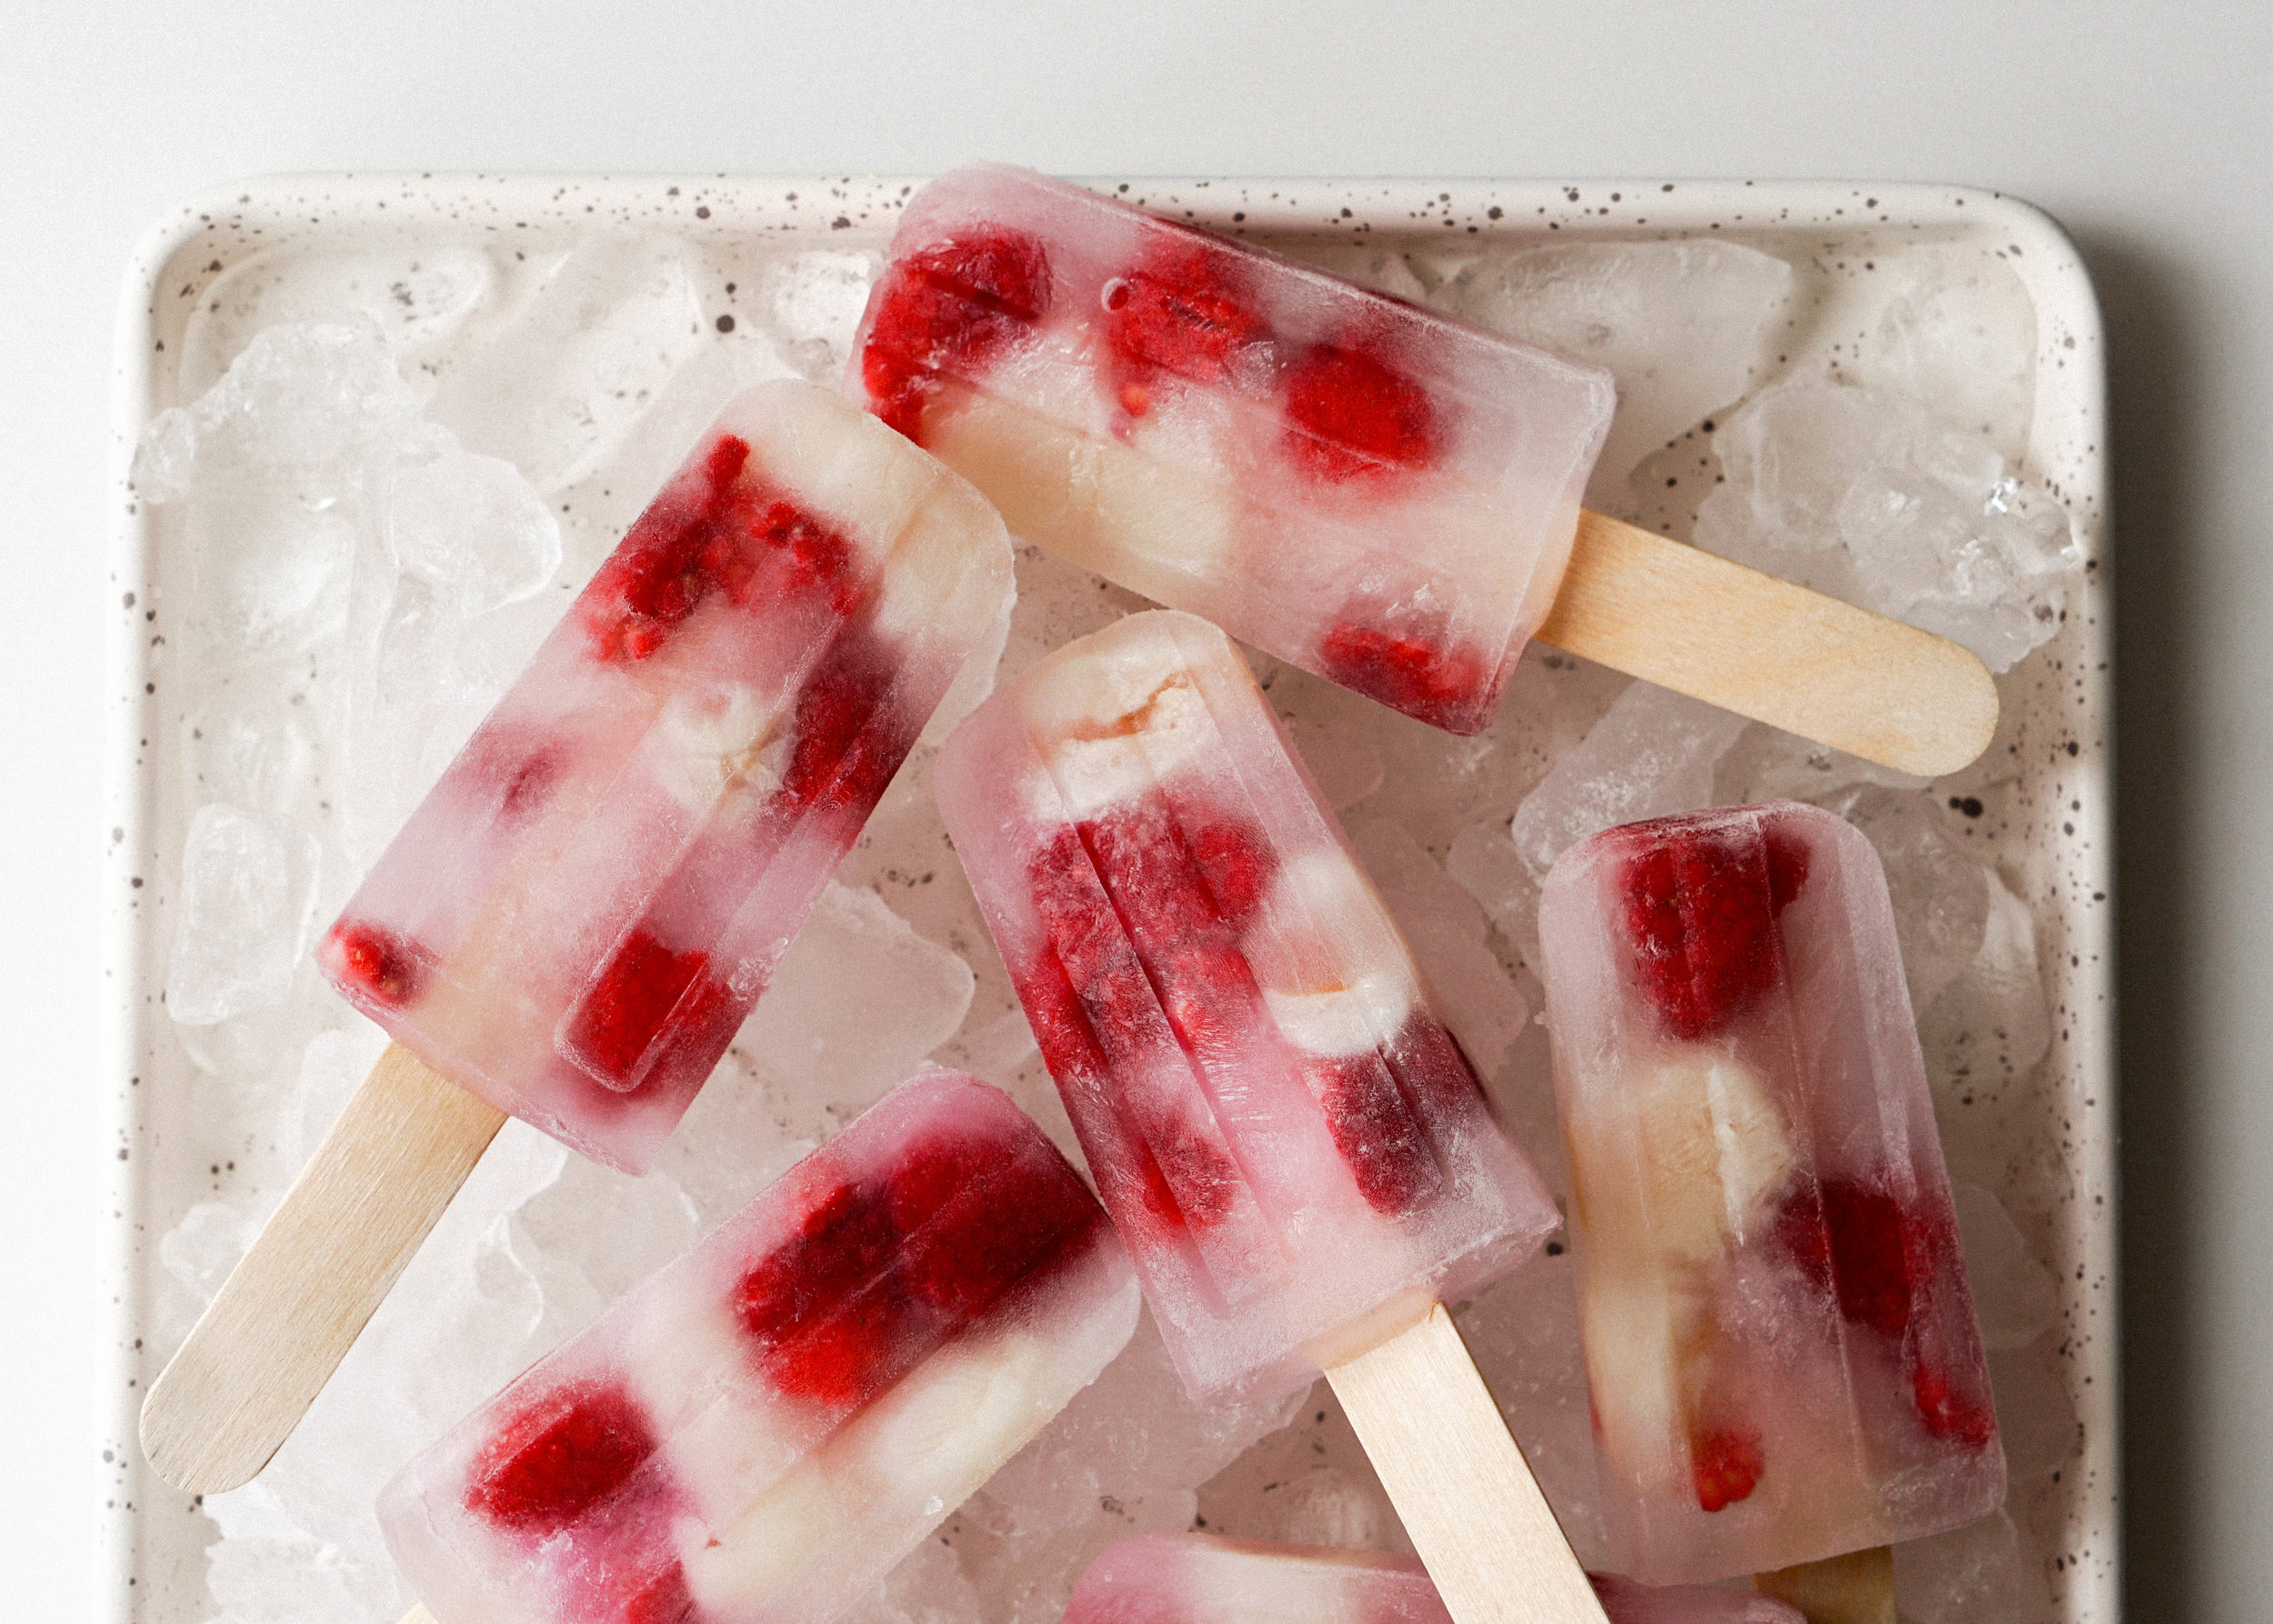 Lychee and Raspberry Popsicles - Eat Cho Food